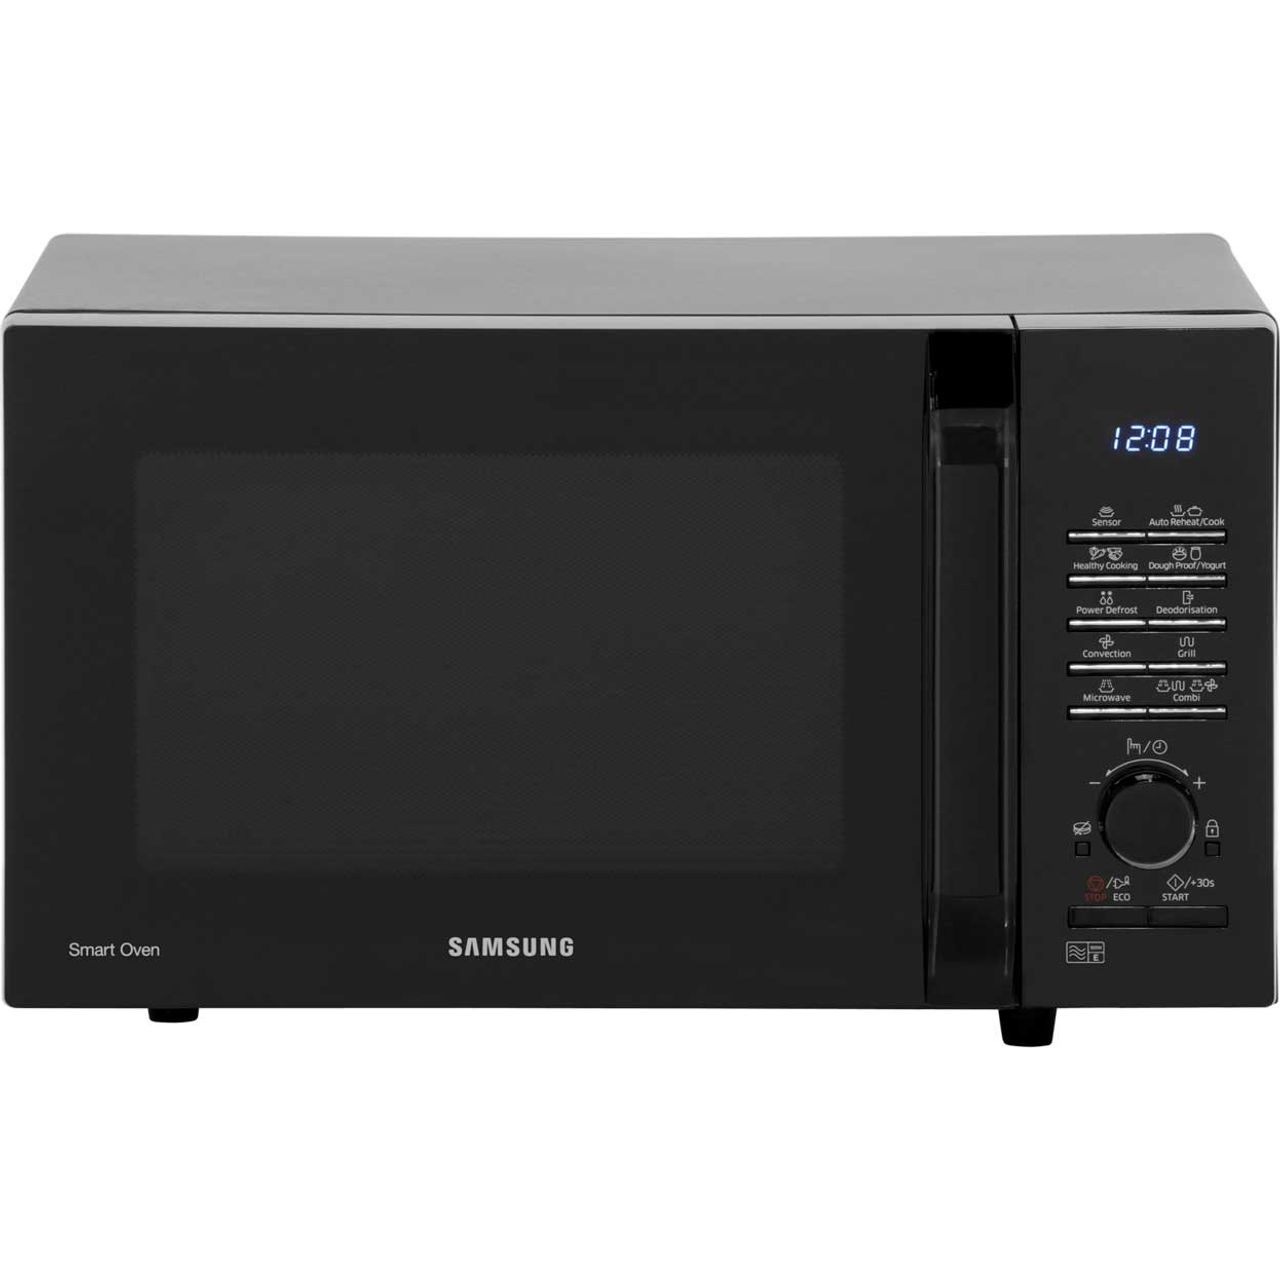 Samsung Smart Oven Mc28h5125ak 28 Litre Combination Microwave Black Bk 1